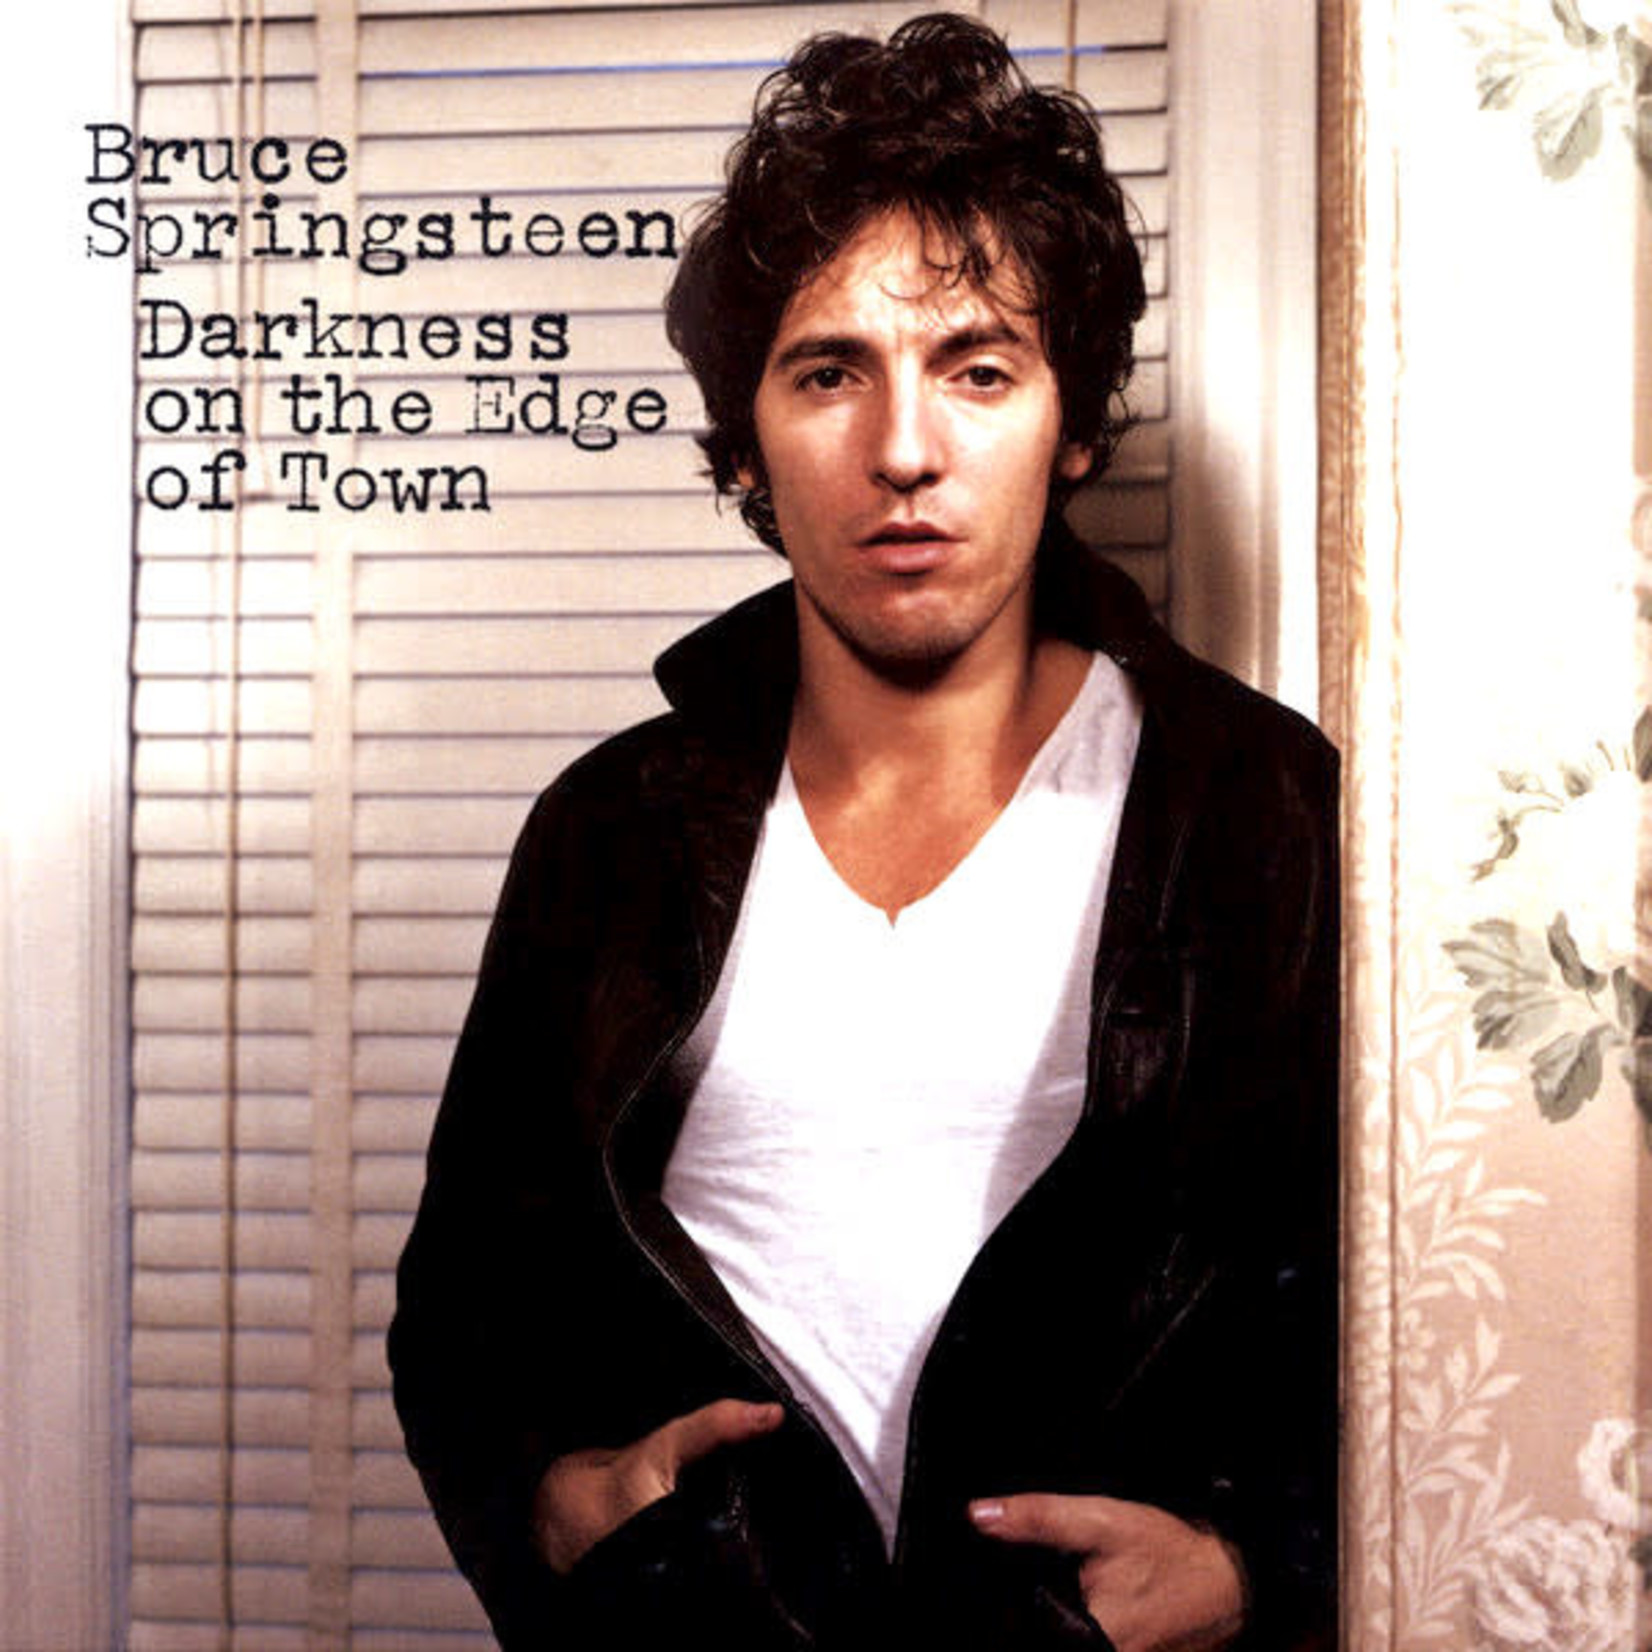 [New] Springsteen, Bruce: Darkness On The Edge Of Town